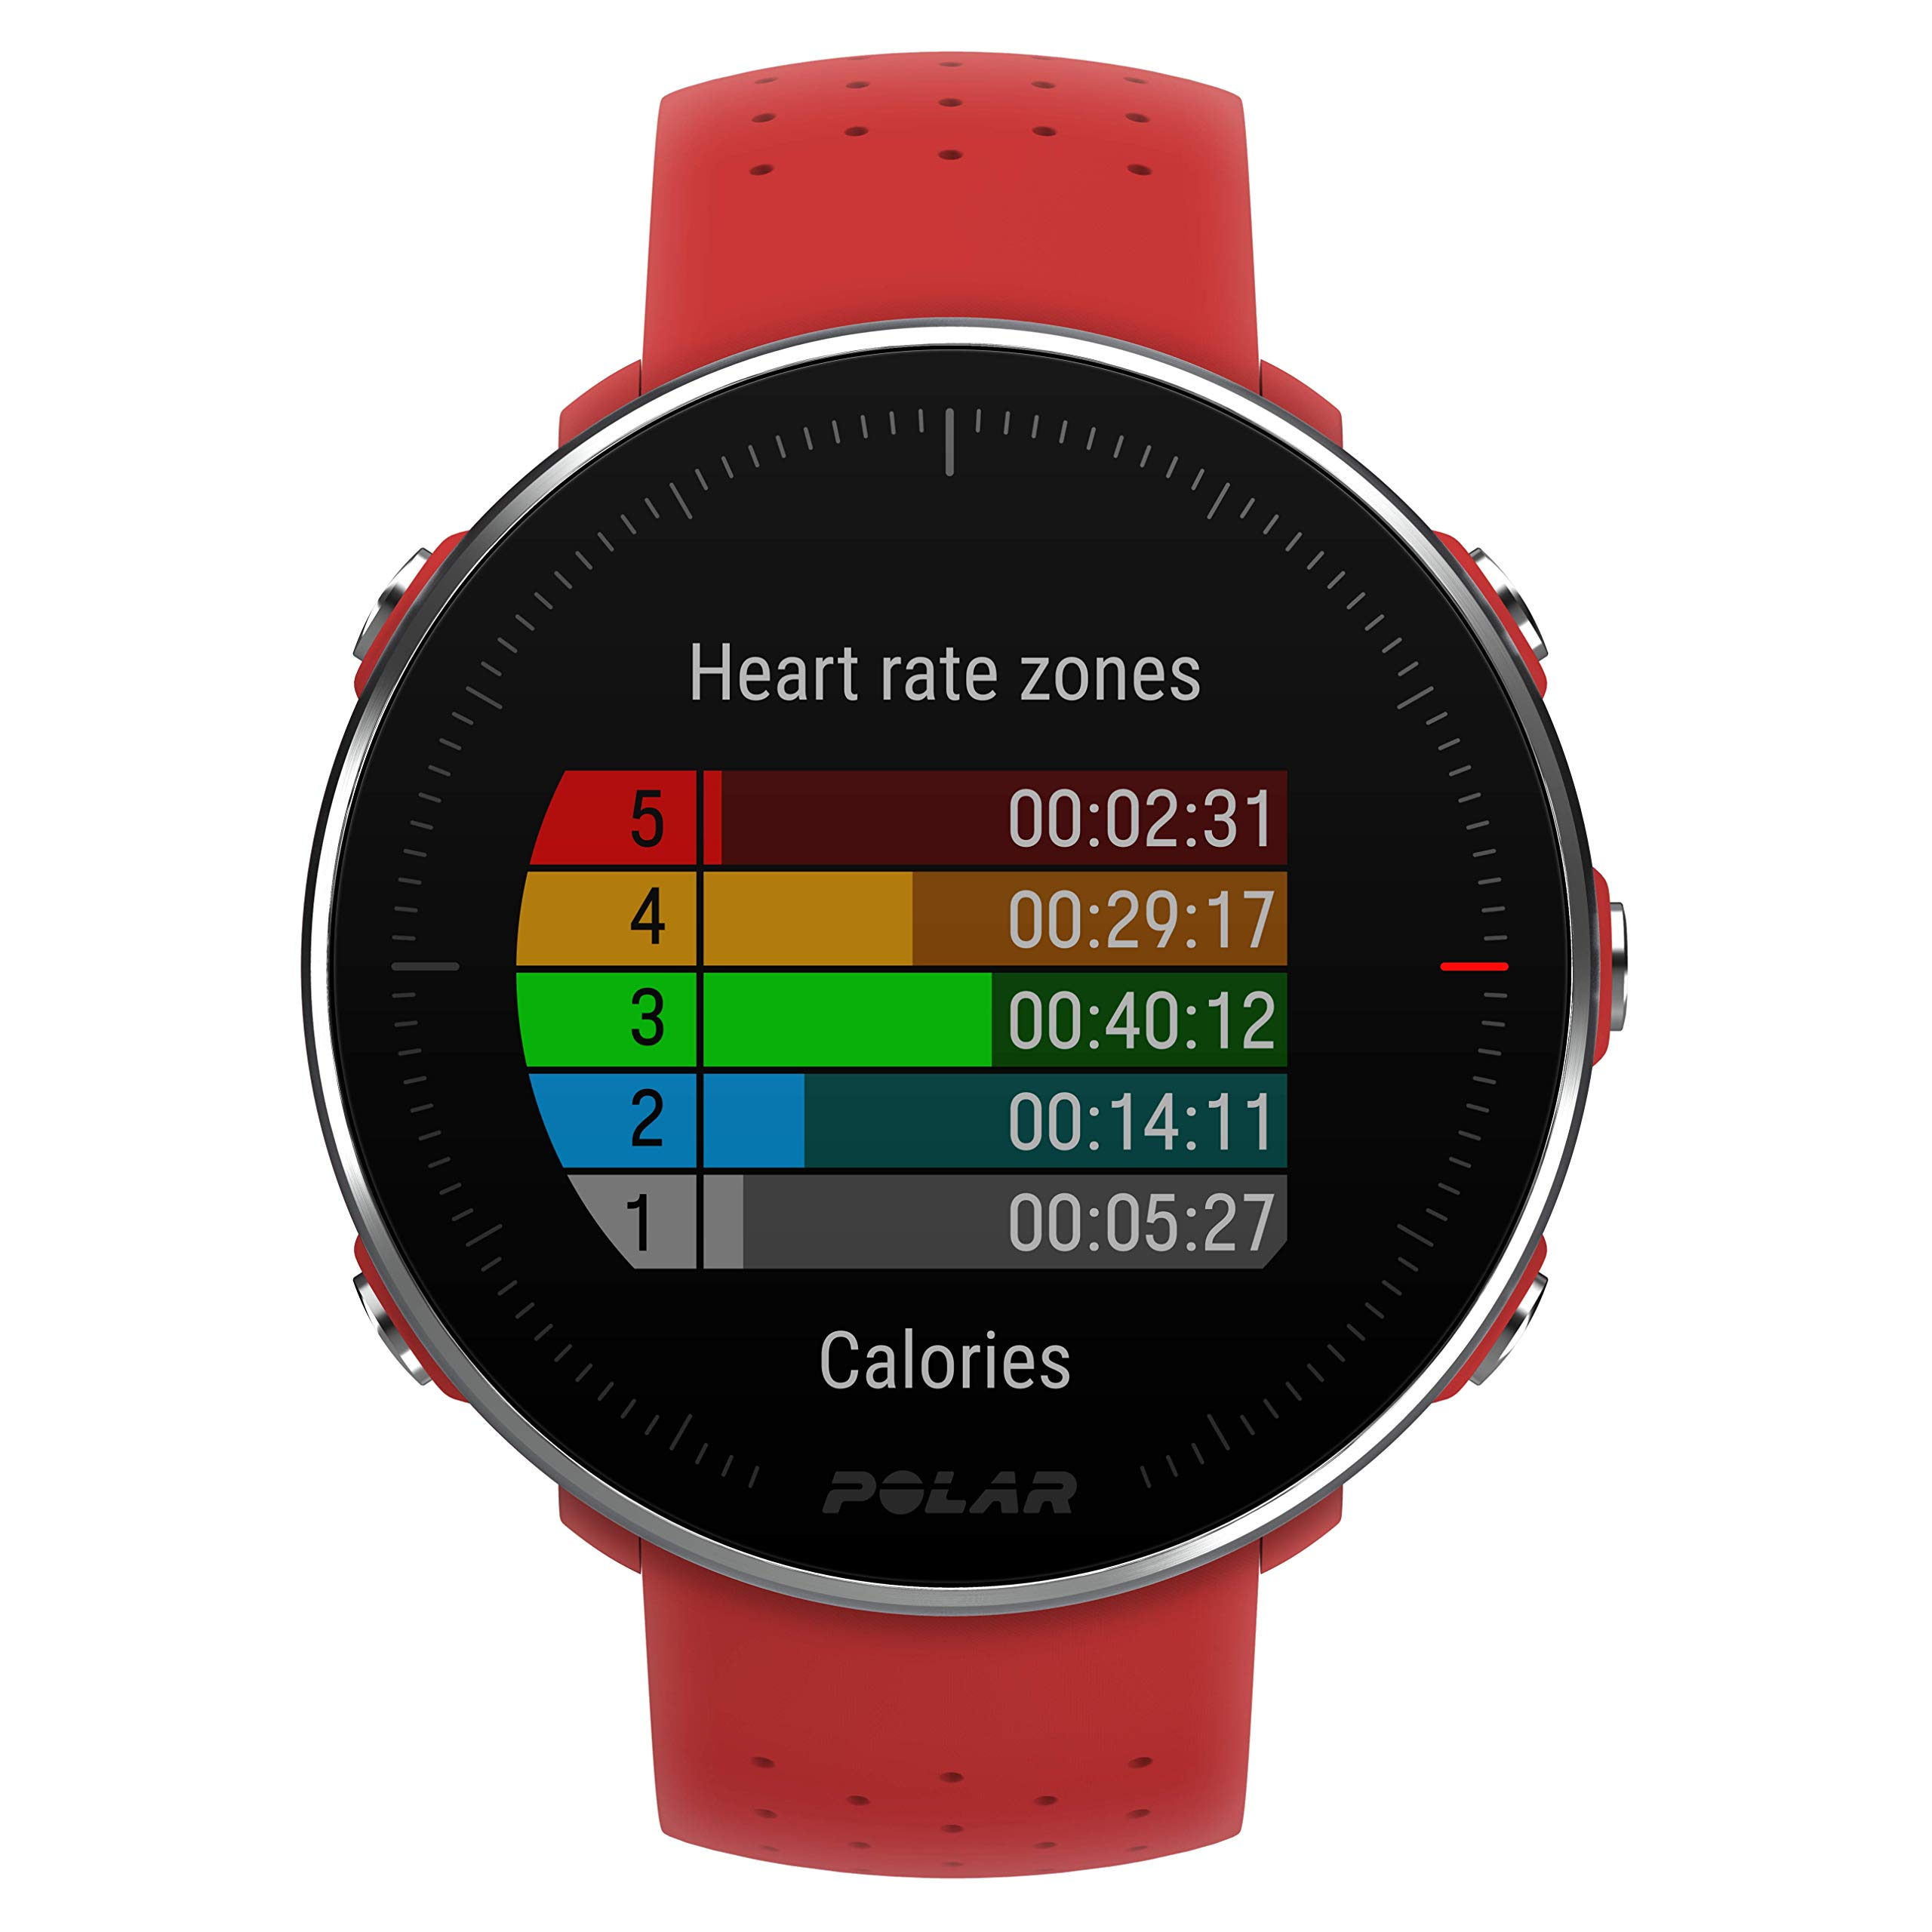 POLAR VANTAGE M –Advanced Running & Multisport Watch with GPS and Wrist-based Heart Rate (Lightweight Design & Latest Technology, Red, M-L by Polar (Image #7)